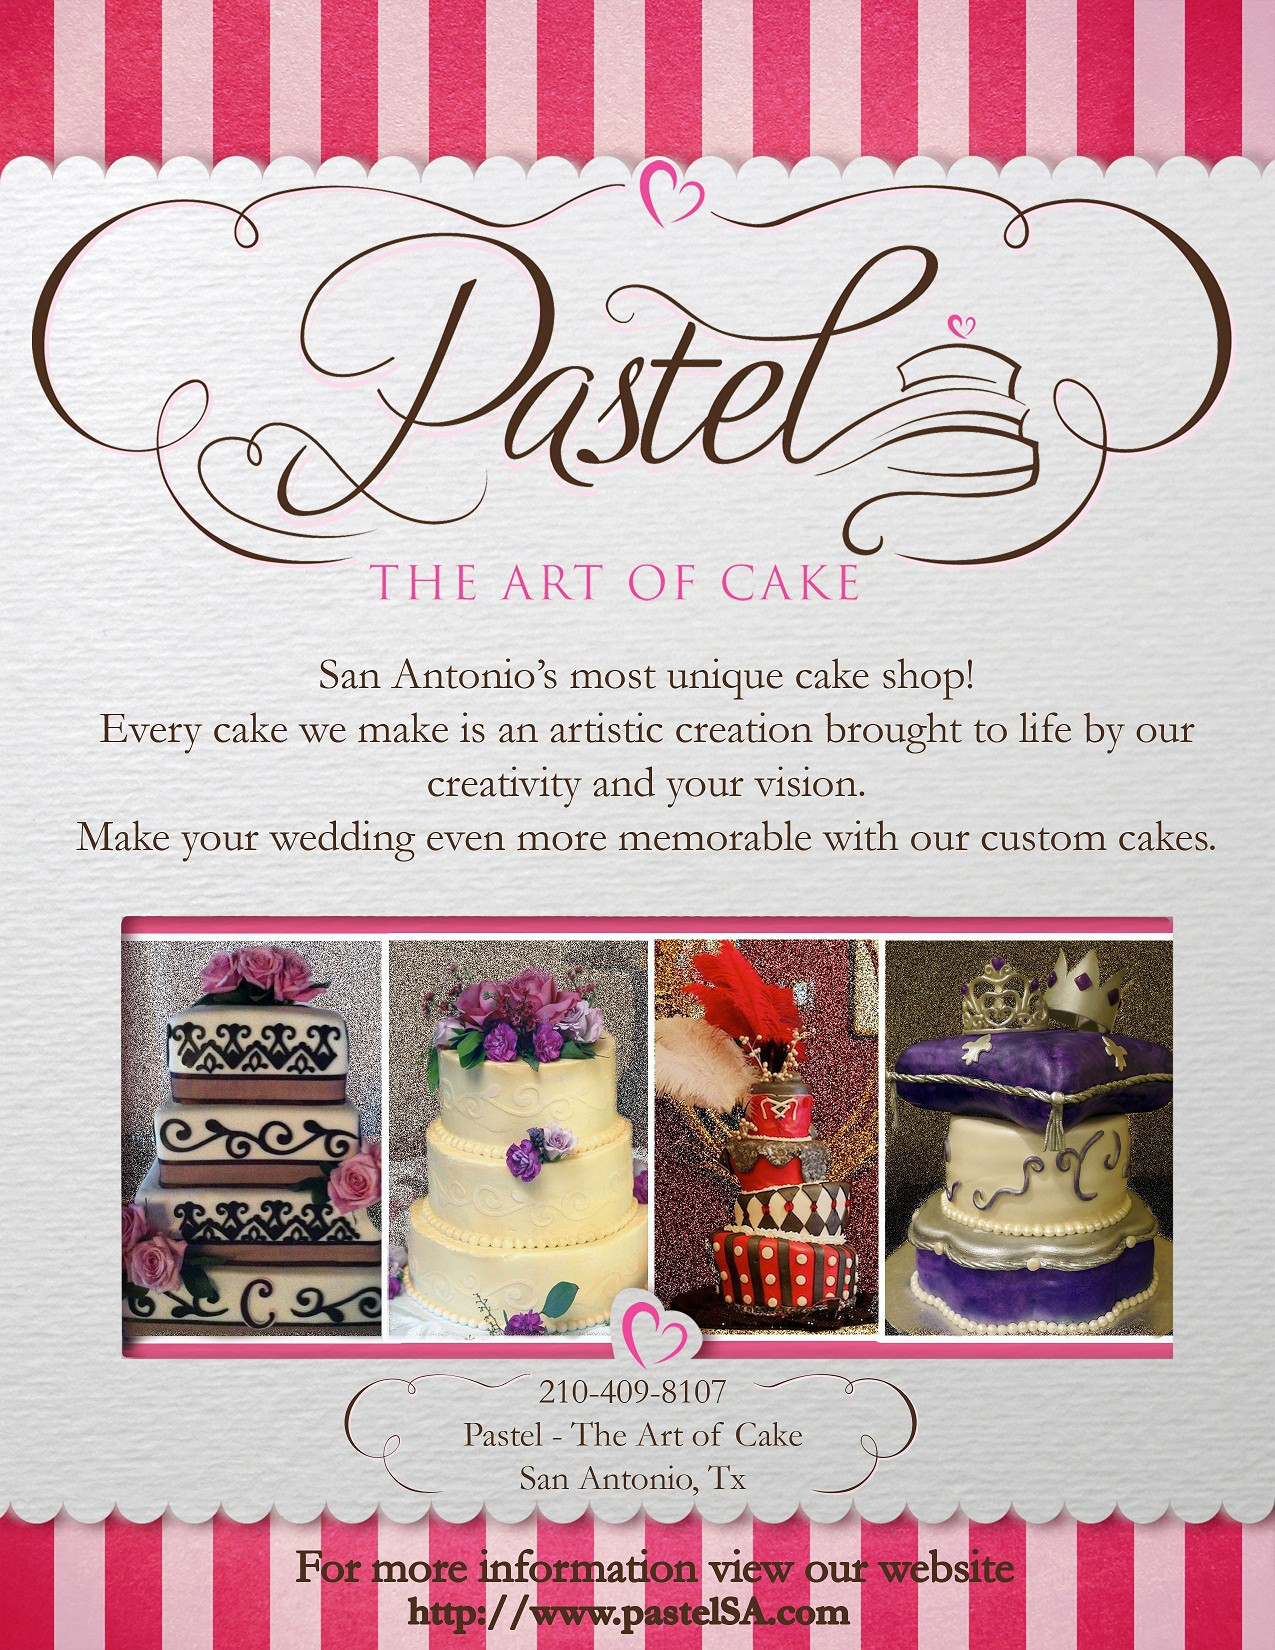 Help Pastel - The Art Of Cake with a new postcard or flyer